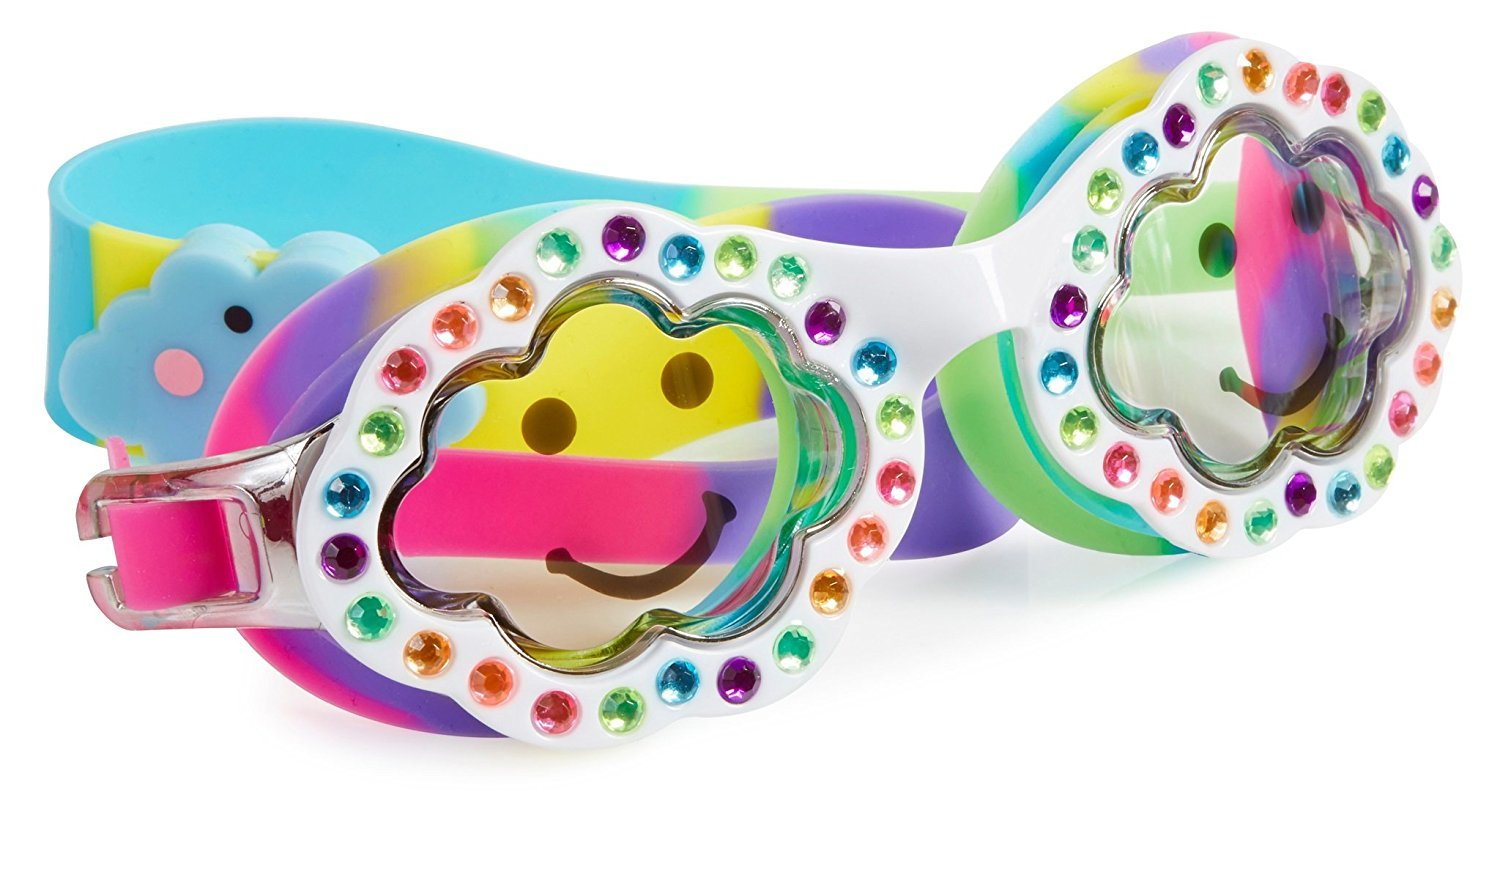 Cloud Swimming Goggles for Kids by Bling2O - Anti Fog, No Leak, Non Slip and UV Protection - White Cloud Colored Fun Water Accessory Includes Hard Case